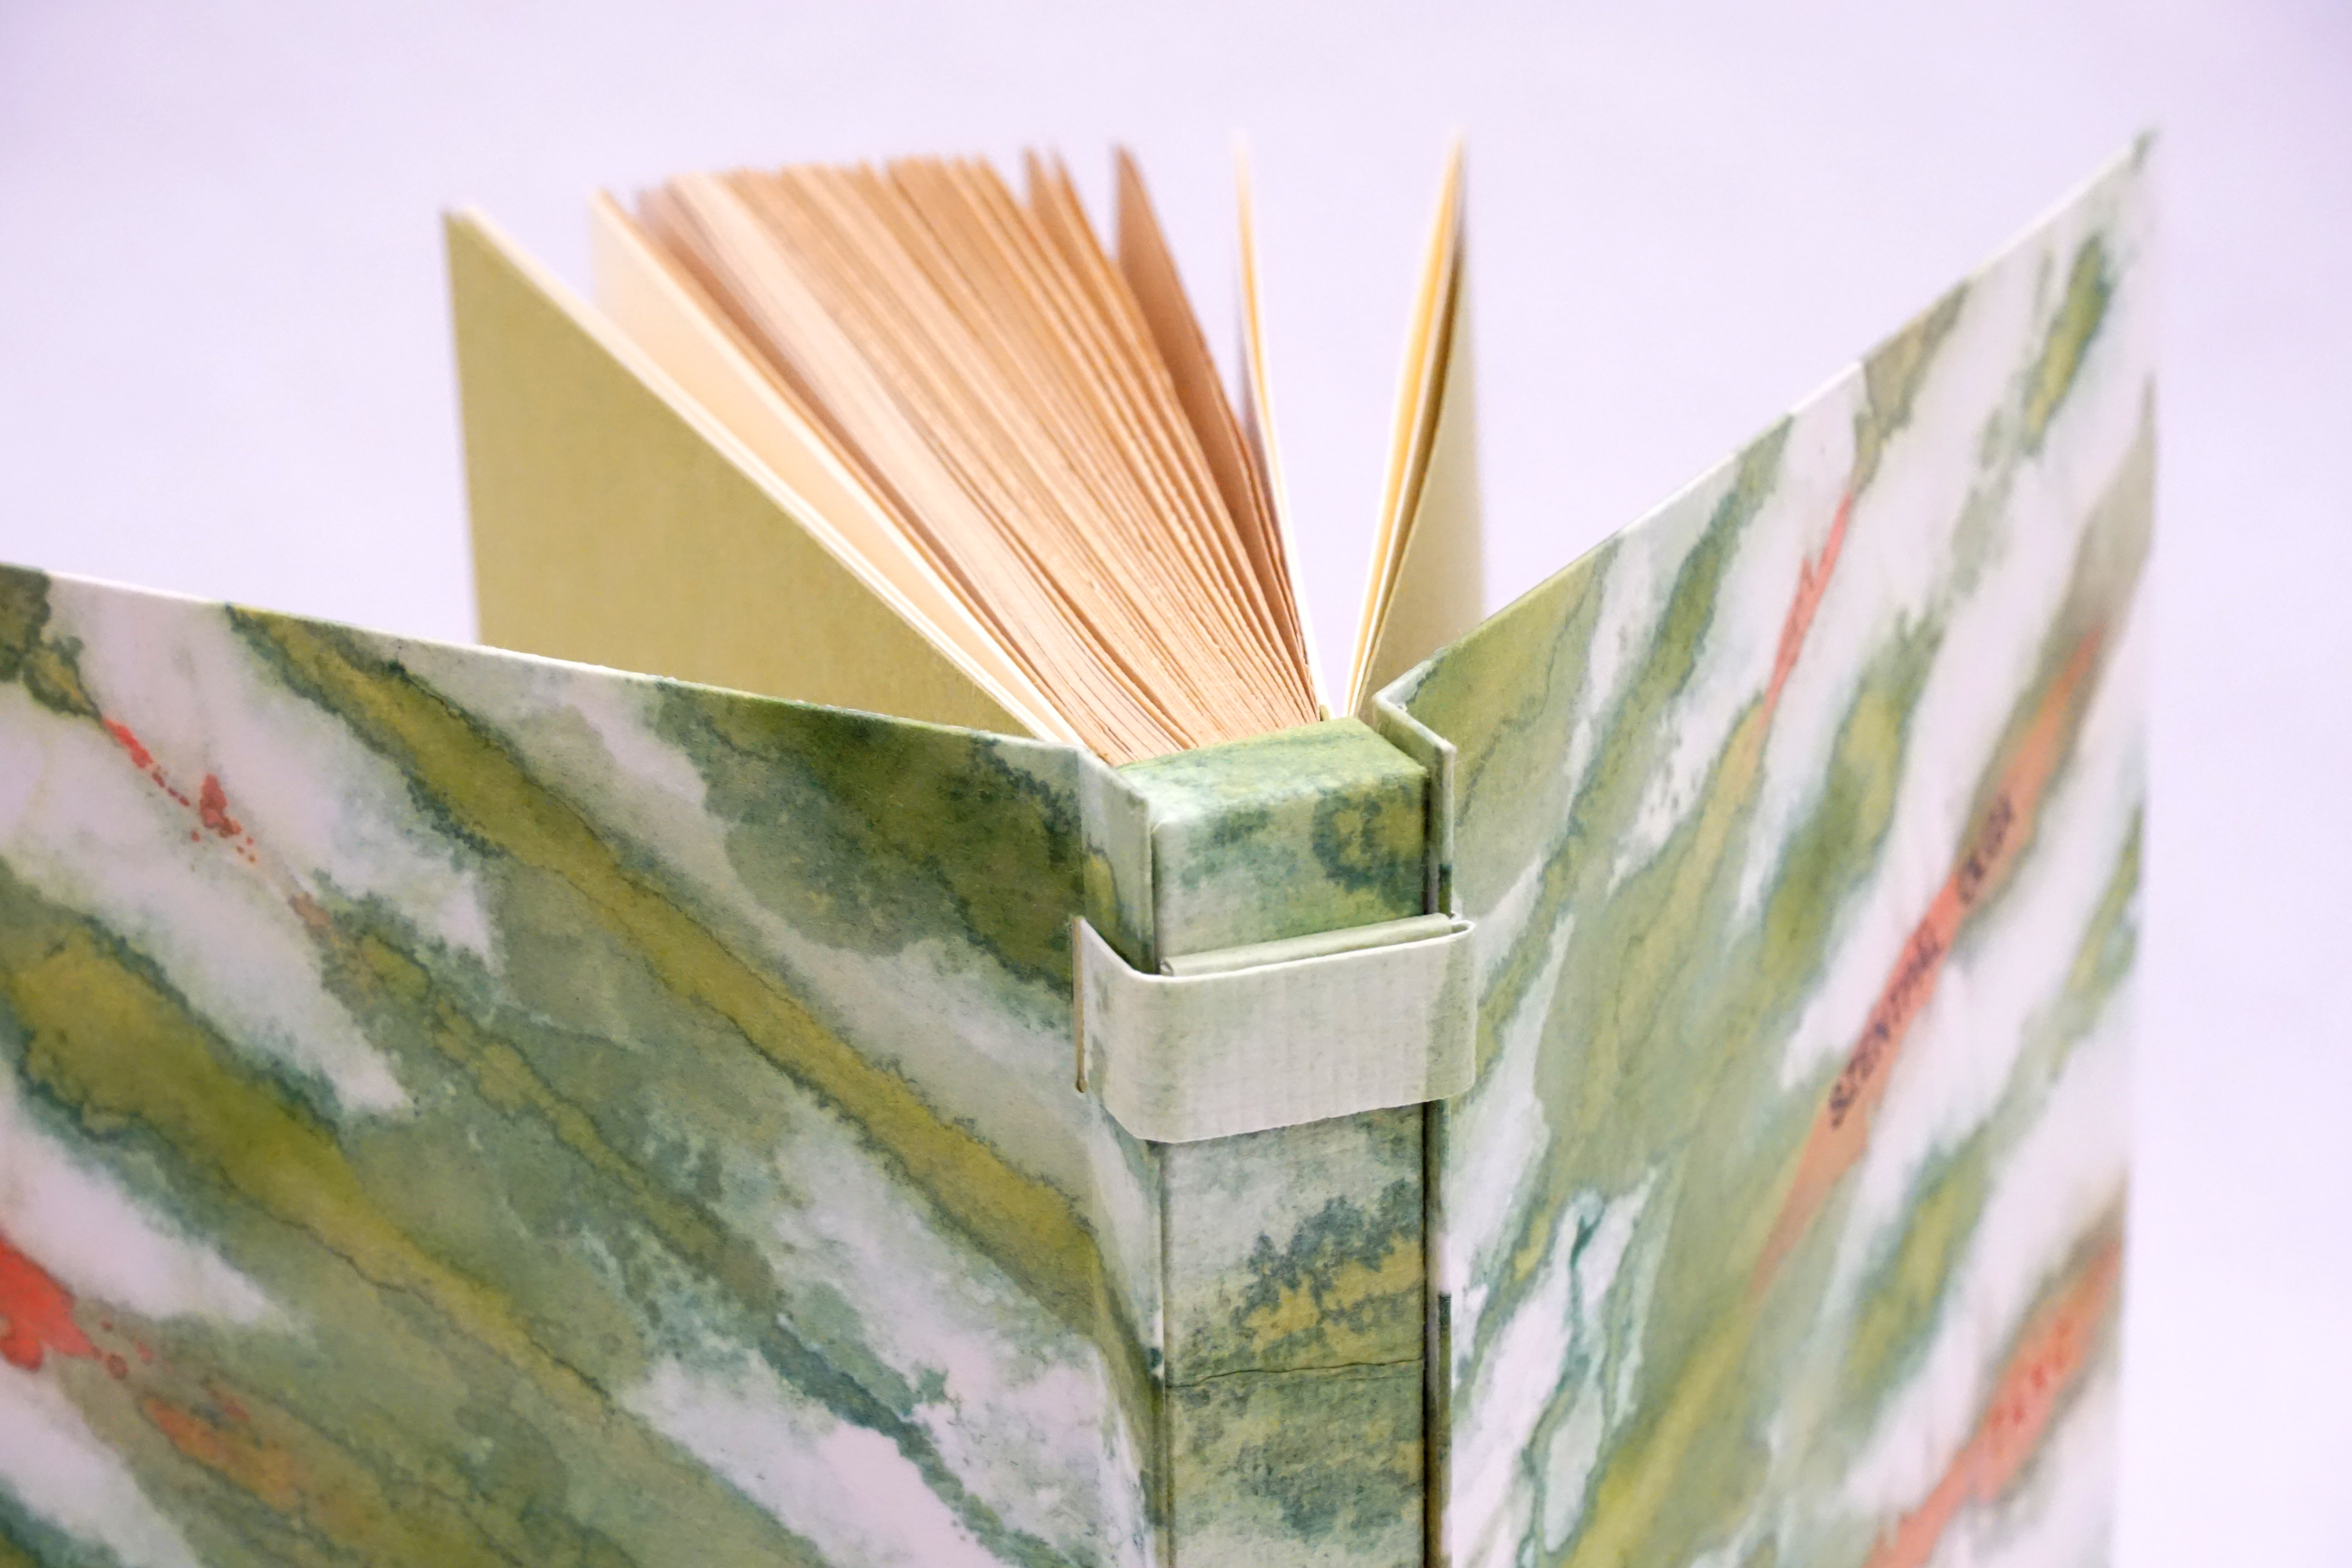 reliure-art, reliure-creation, reliure-france, bookbinding, art-bookbinding, creation-bookbinding, french-bookbinding, paper-bookbinding, reliure-papier, julie-auzillon, obi-ori-dome